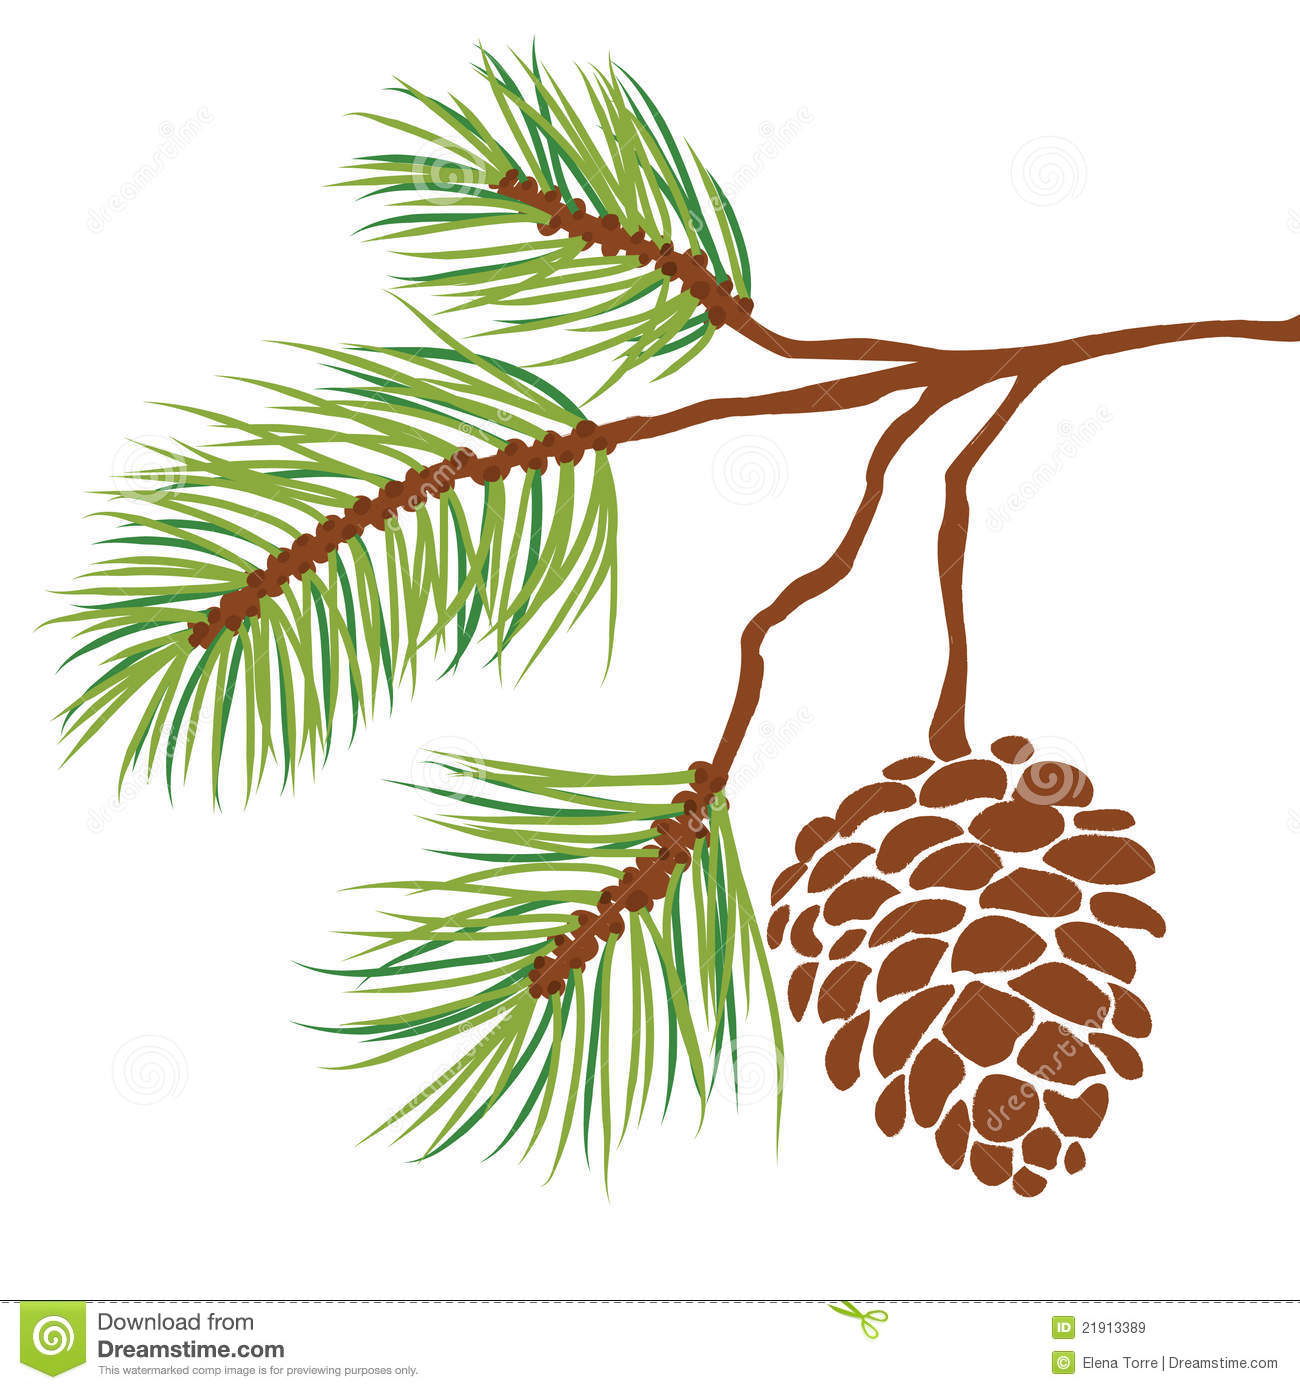 Longleaf Pine Needle Clip Art.